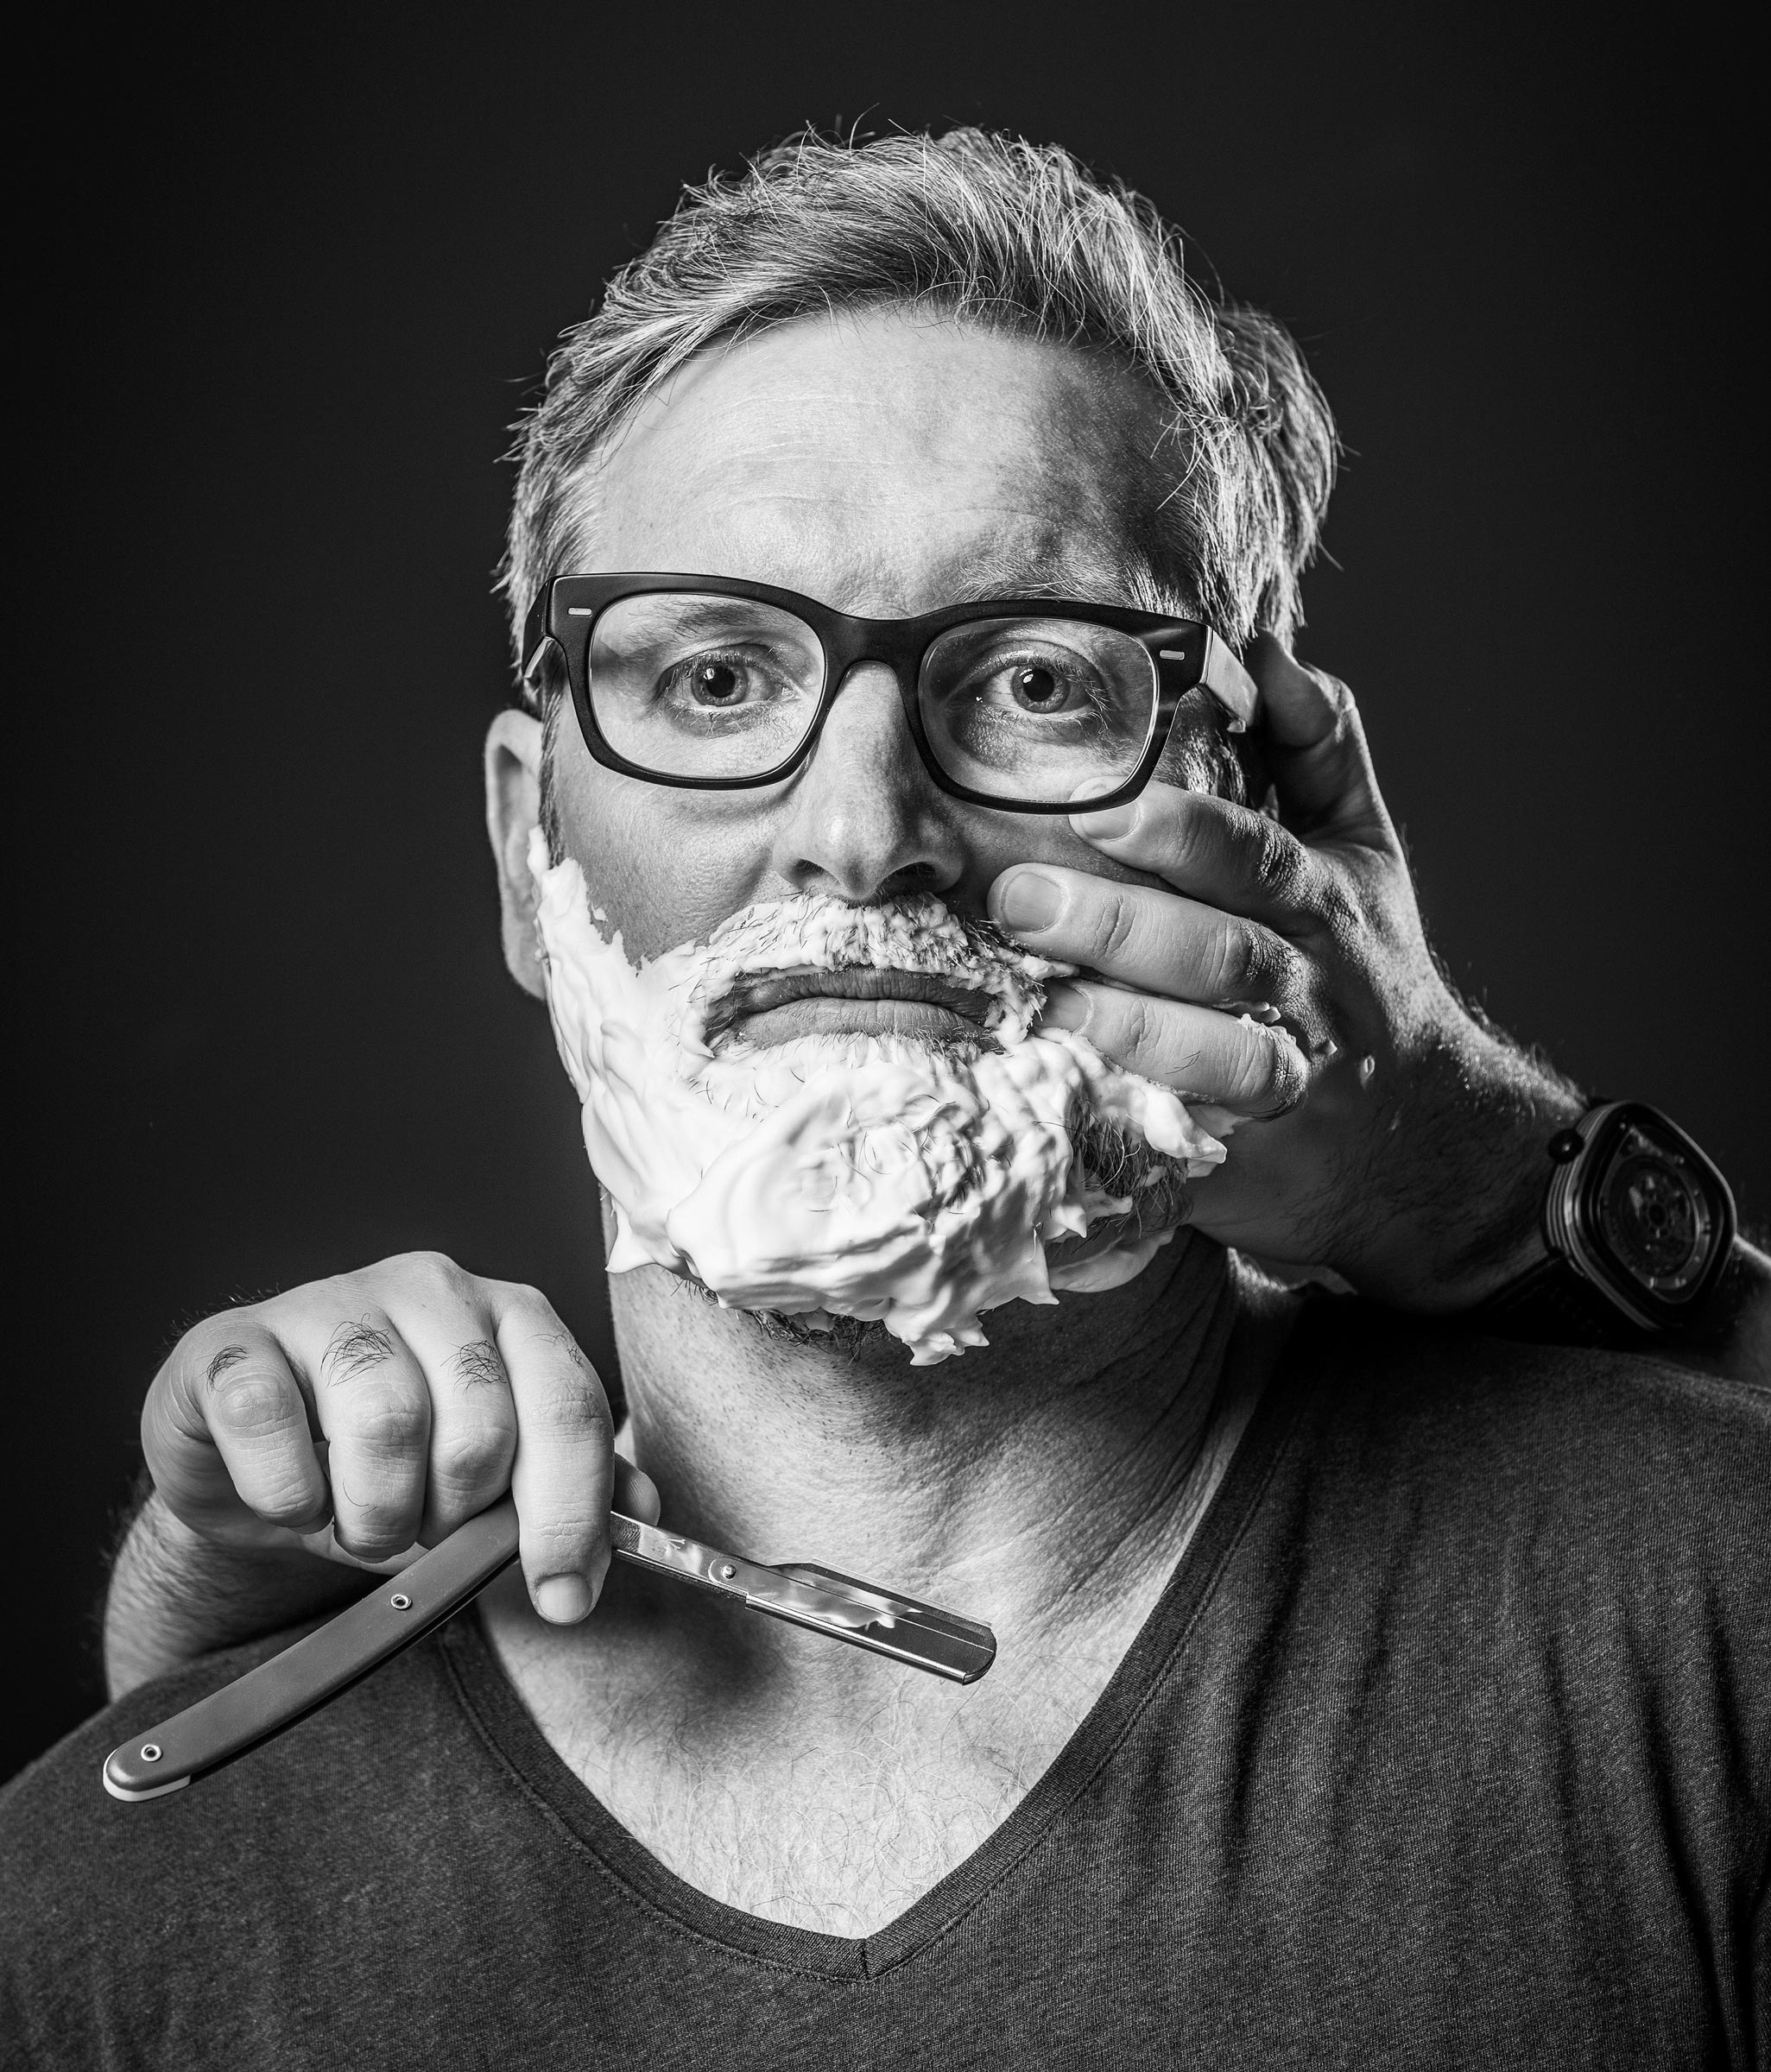 Character black and white photography of man with glasses having a n shave with cut throat